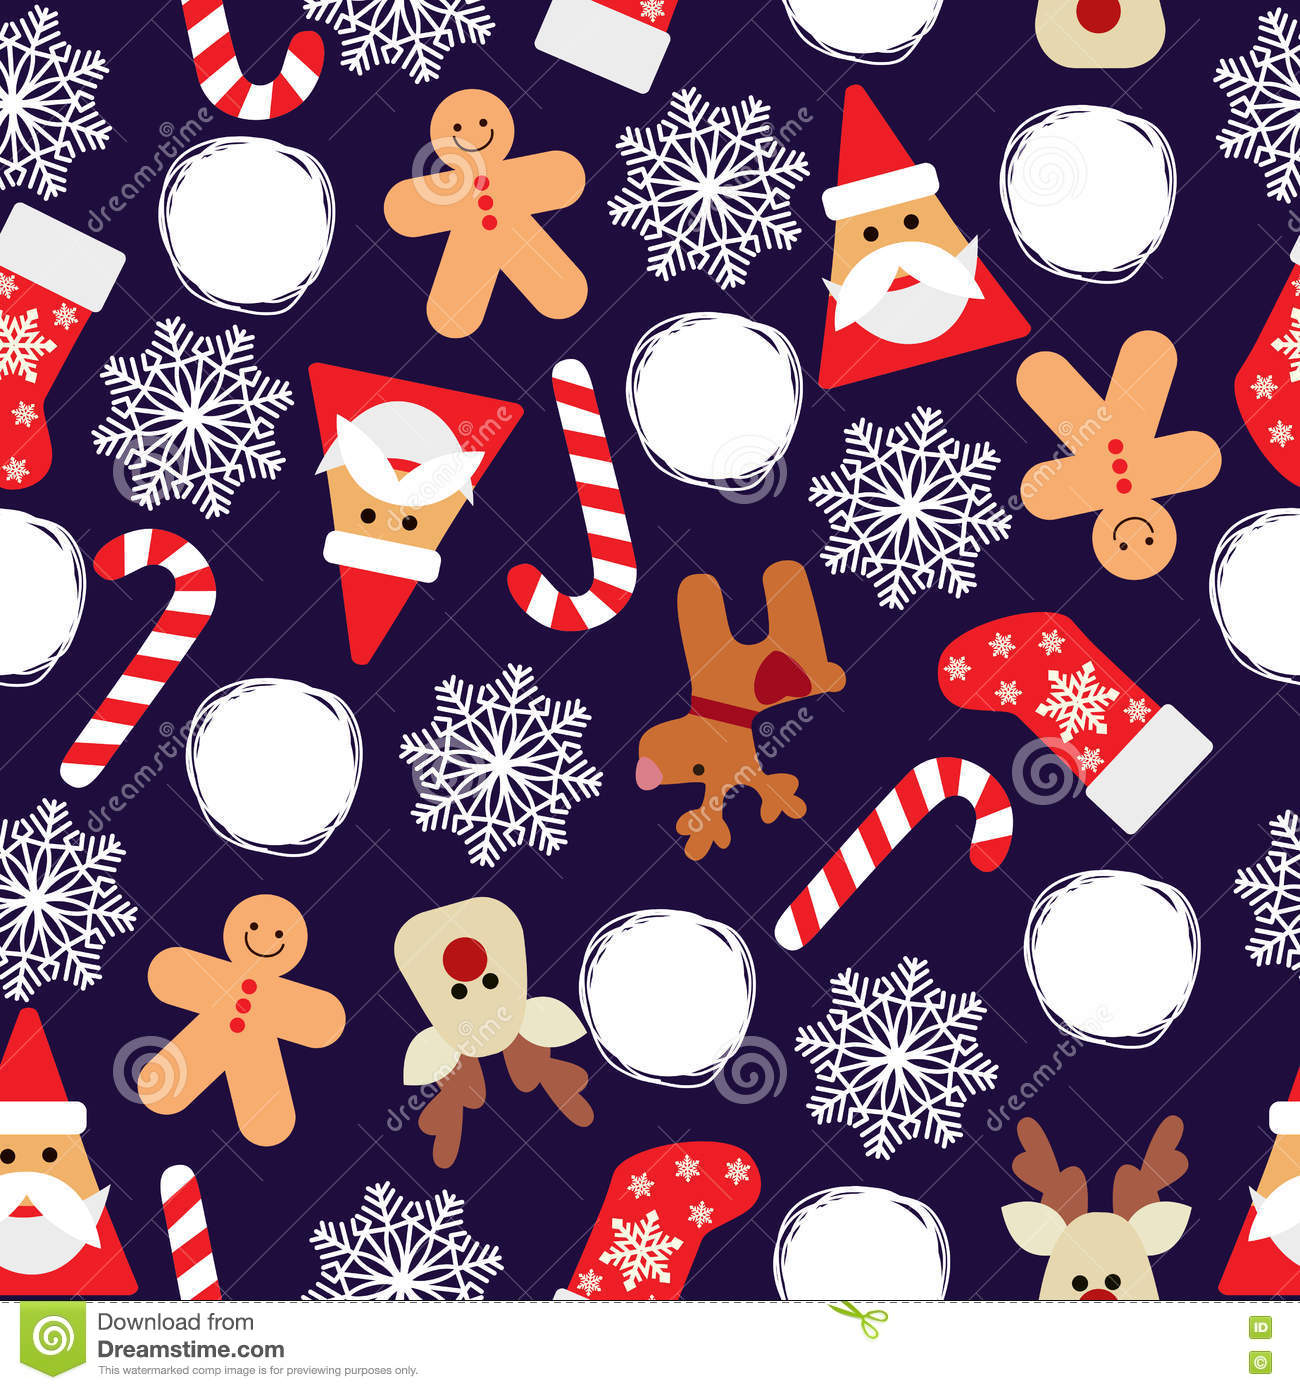 vector seamless flat pattern with icons of happy new year and christmas day stock vector illustration of reindeer icon 78760369 vector seamless flat pattern with icons of happy new year and christmas day stock vector illustration of reindeer icon 78760369